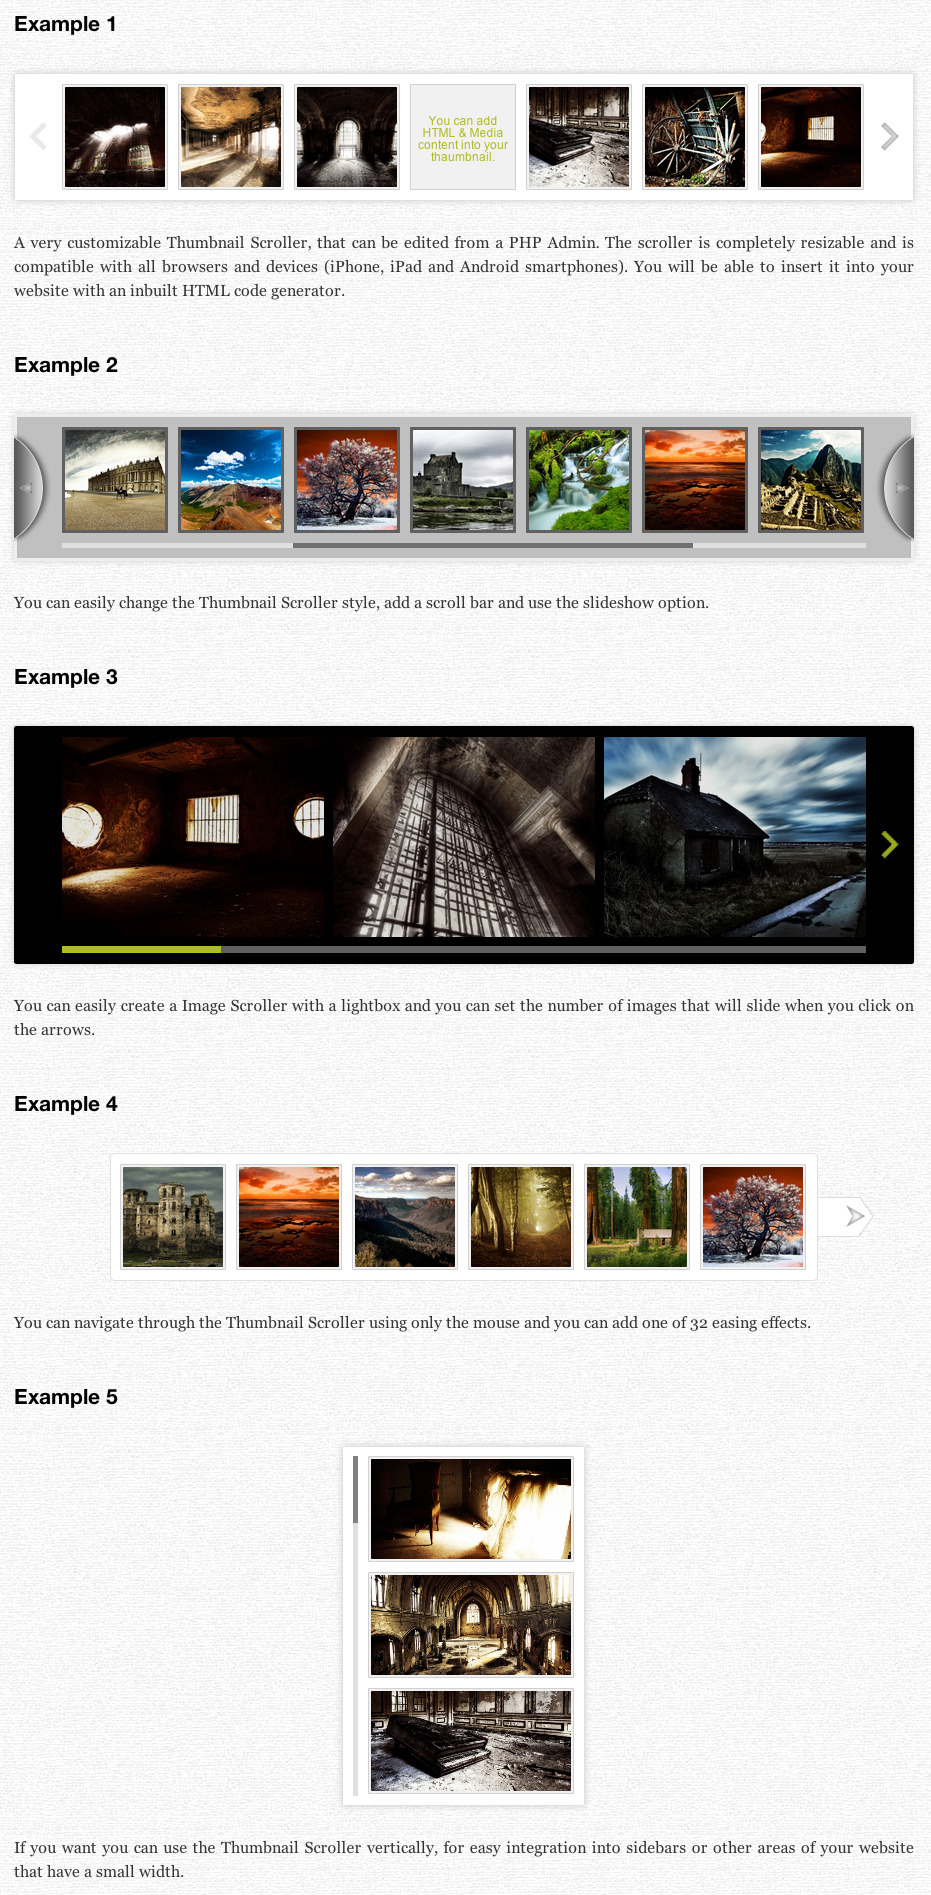 Thumbnail Scroller (with PHP Admin) - Scroller Examples